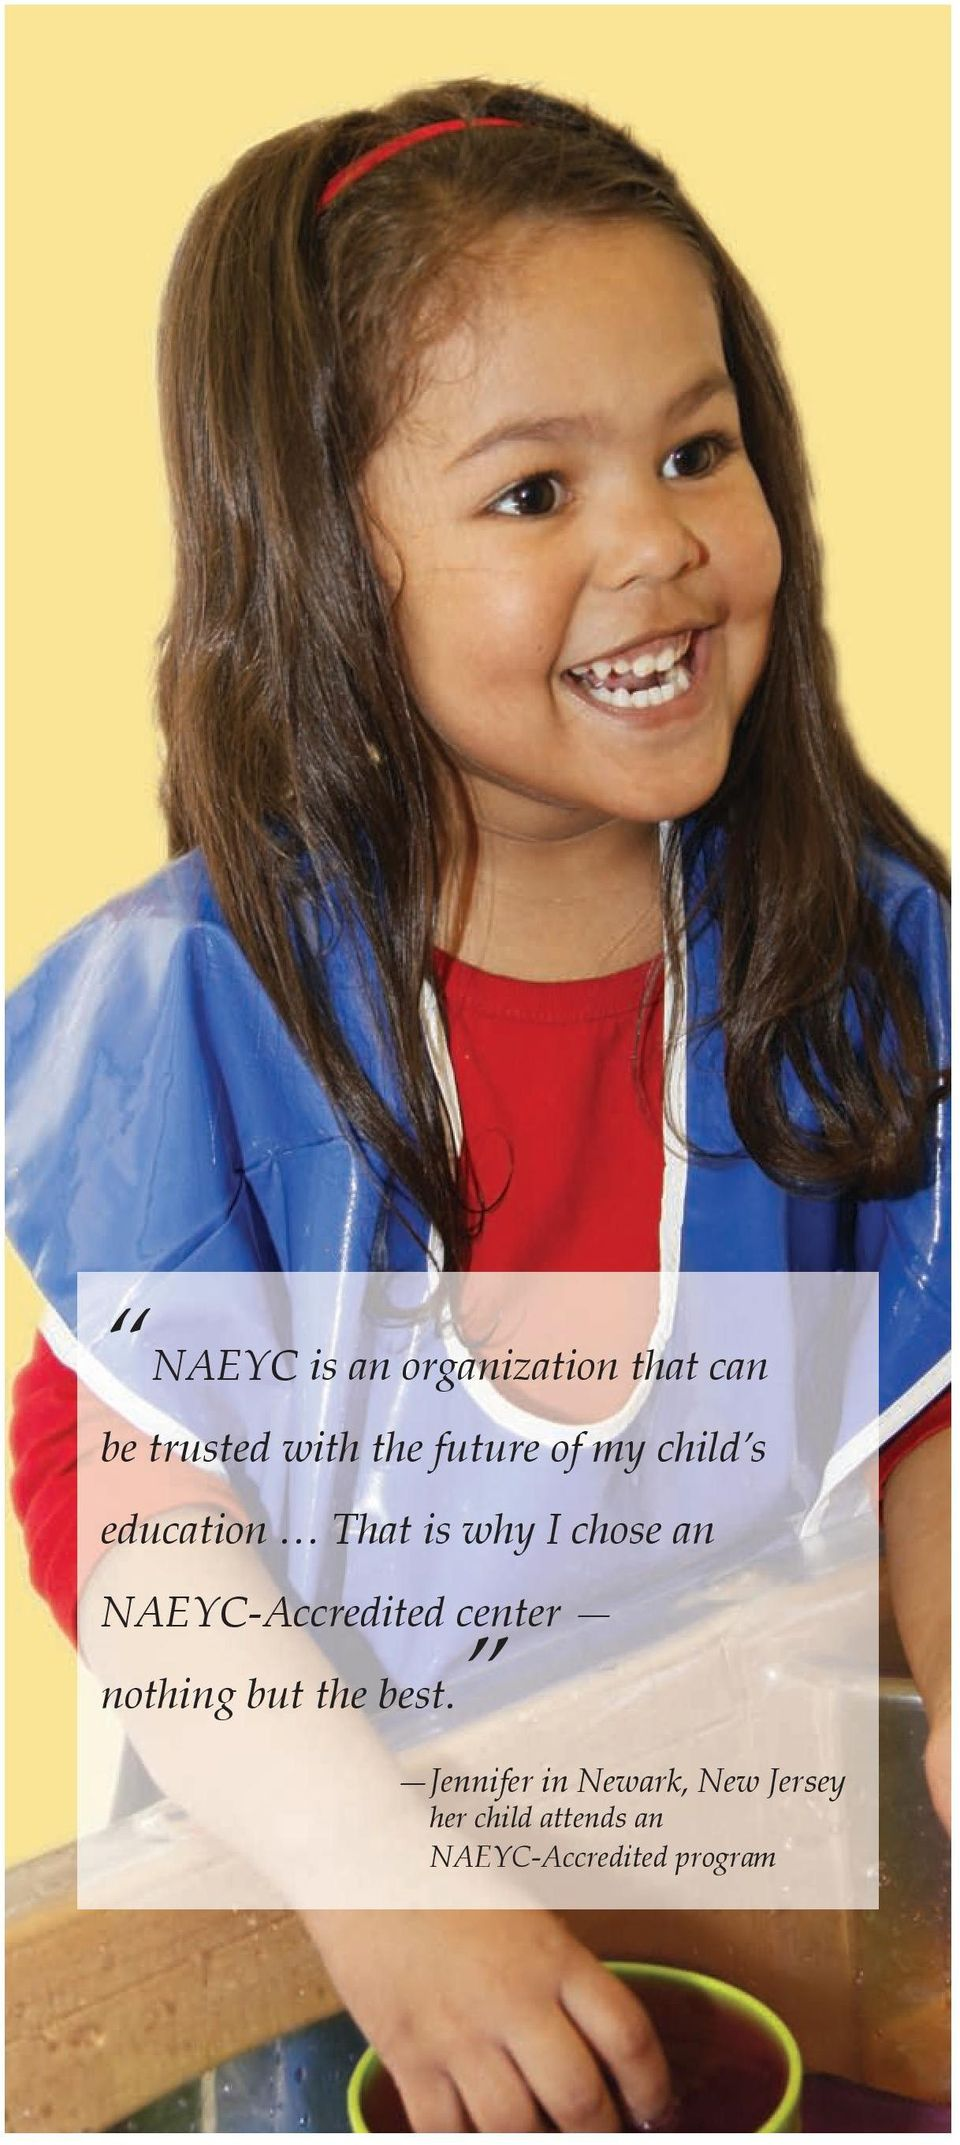 NAEYC-Accredited center nothing but the best.